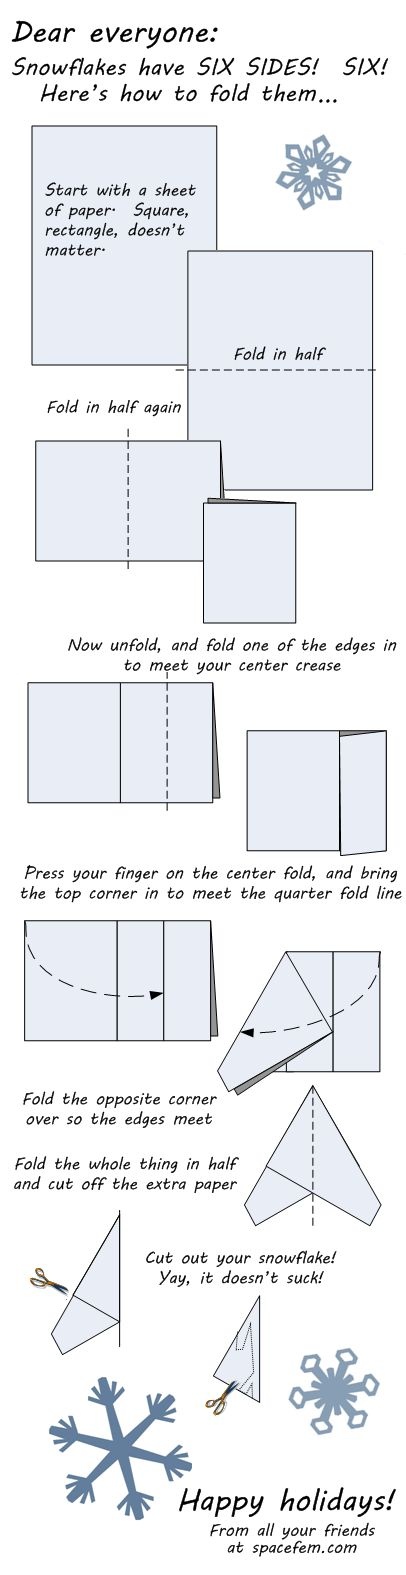 Folding paper to cut a perfect six-sided snowflake. Don't just eyeball it people, this is important, think of the children.